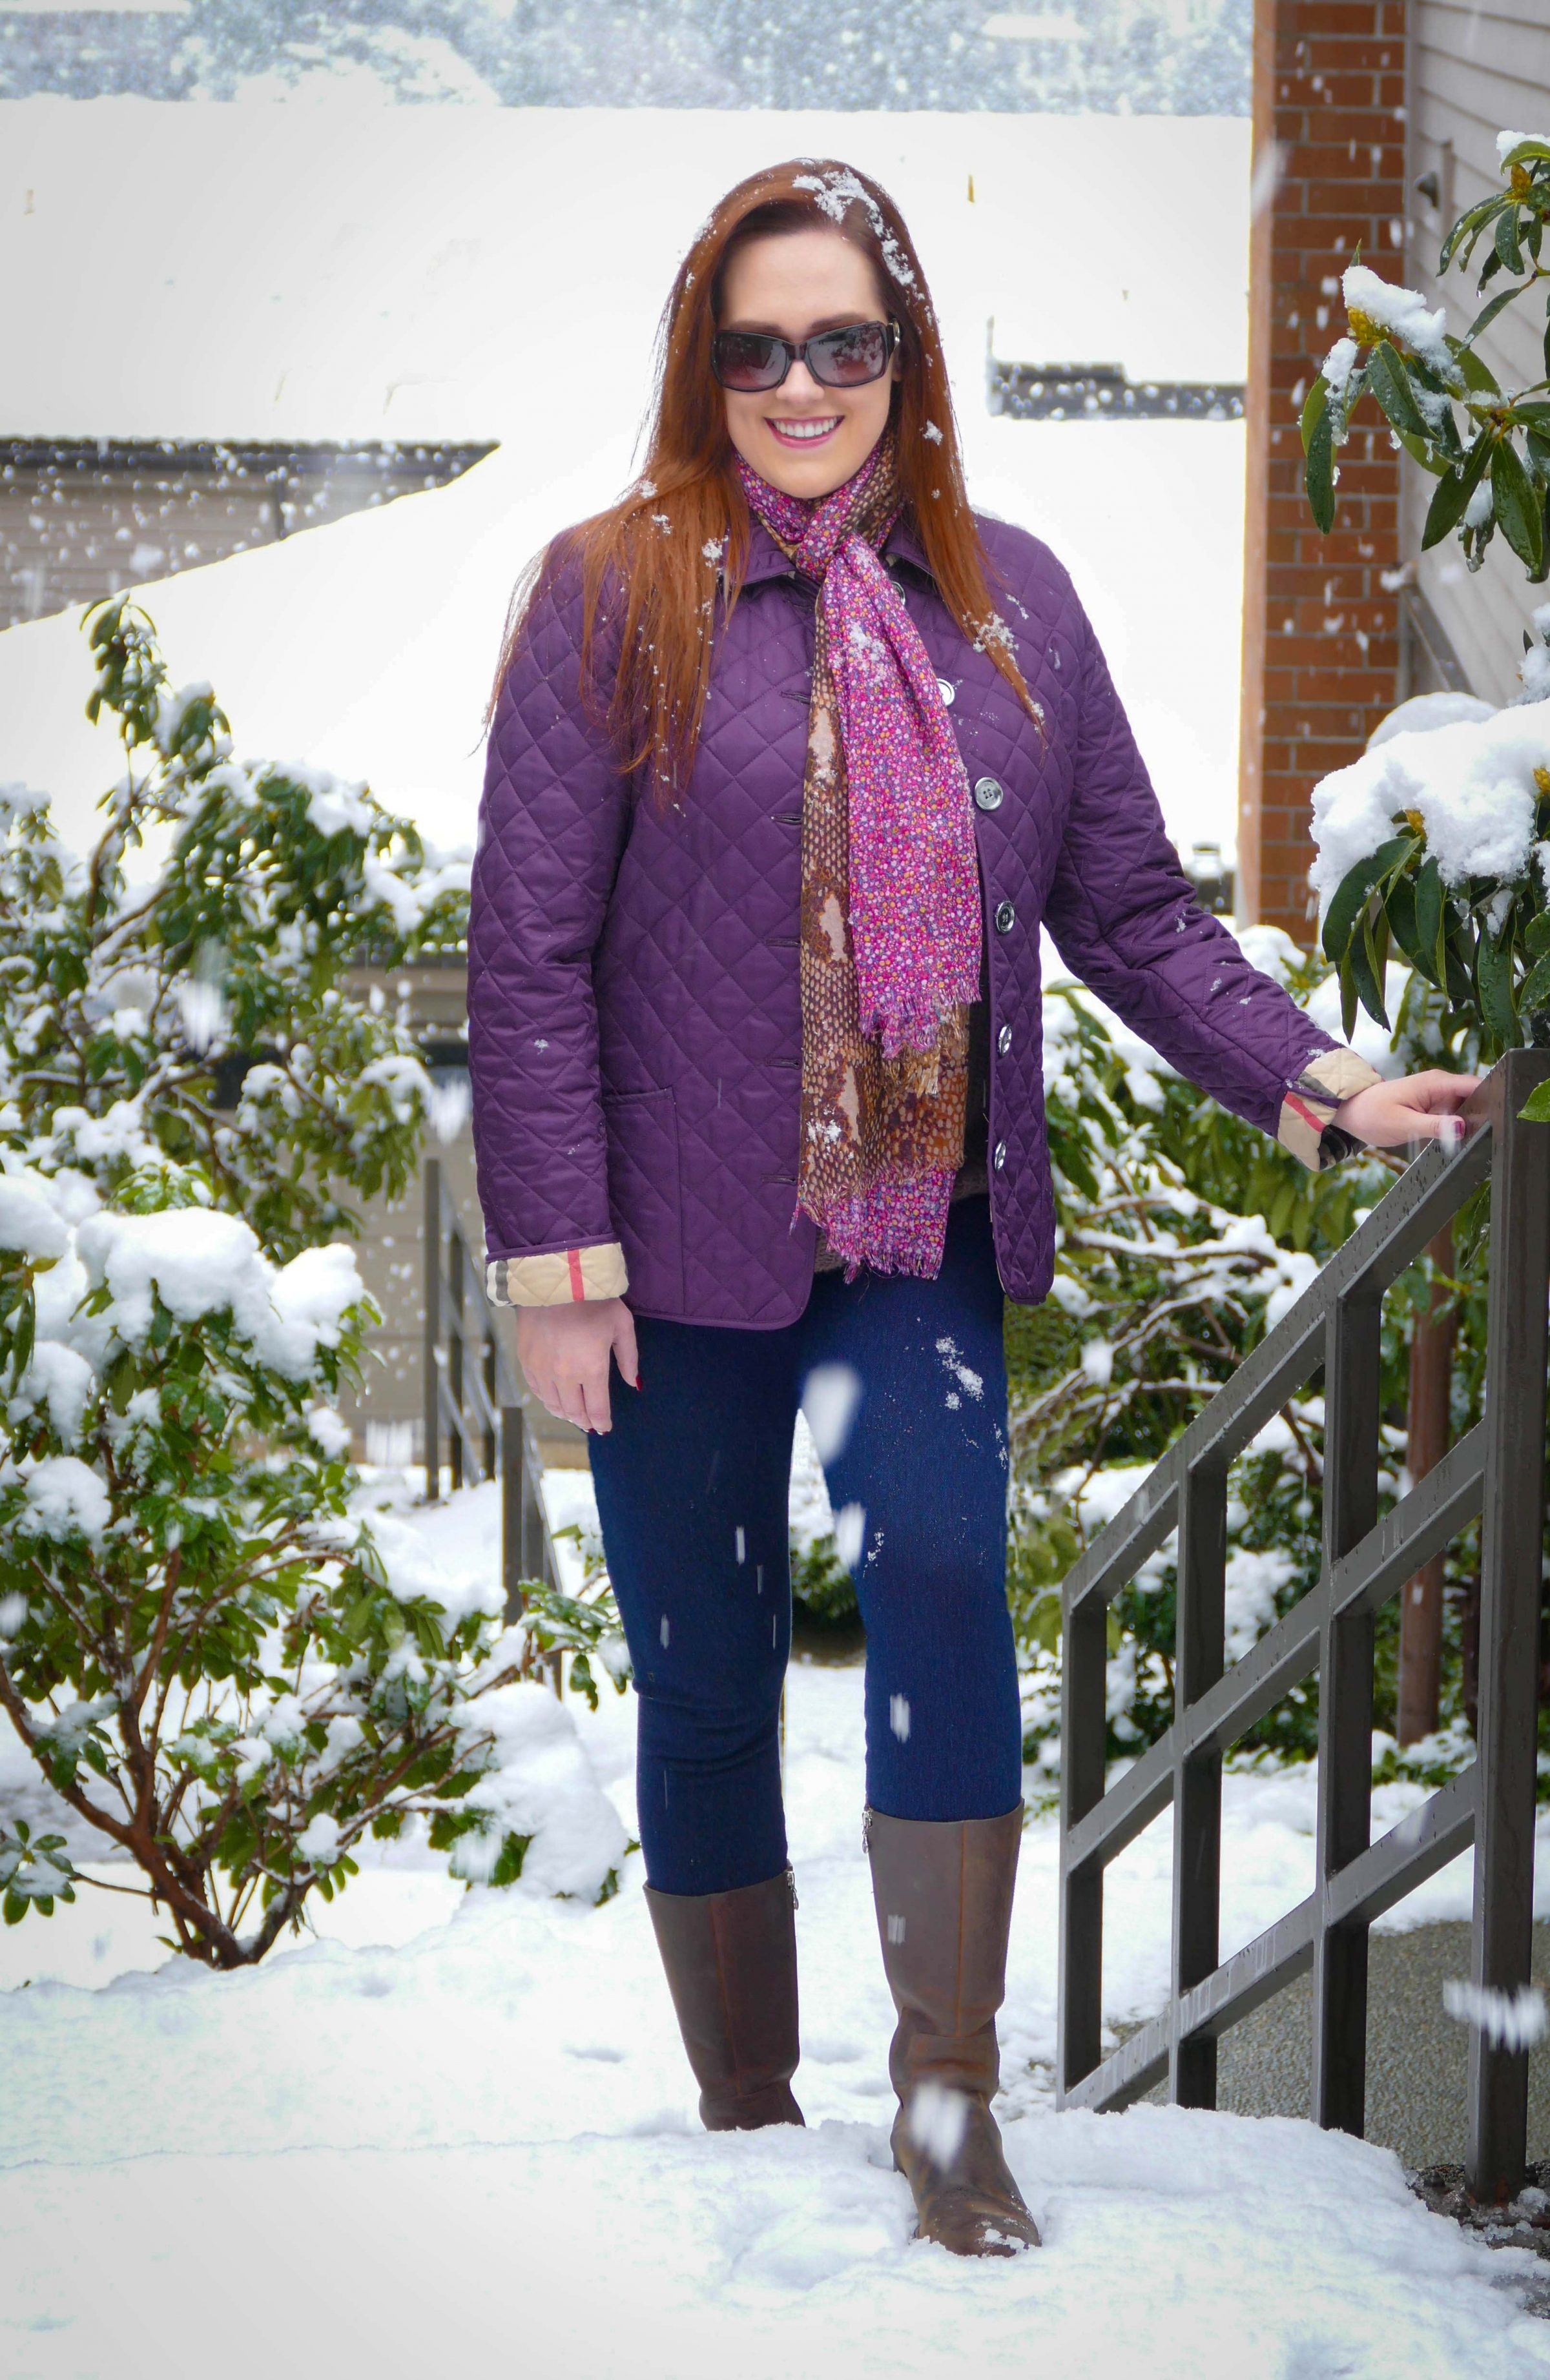 Snowing in Seattle - Katherine Chloe Cahoon E